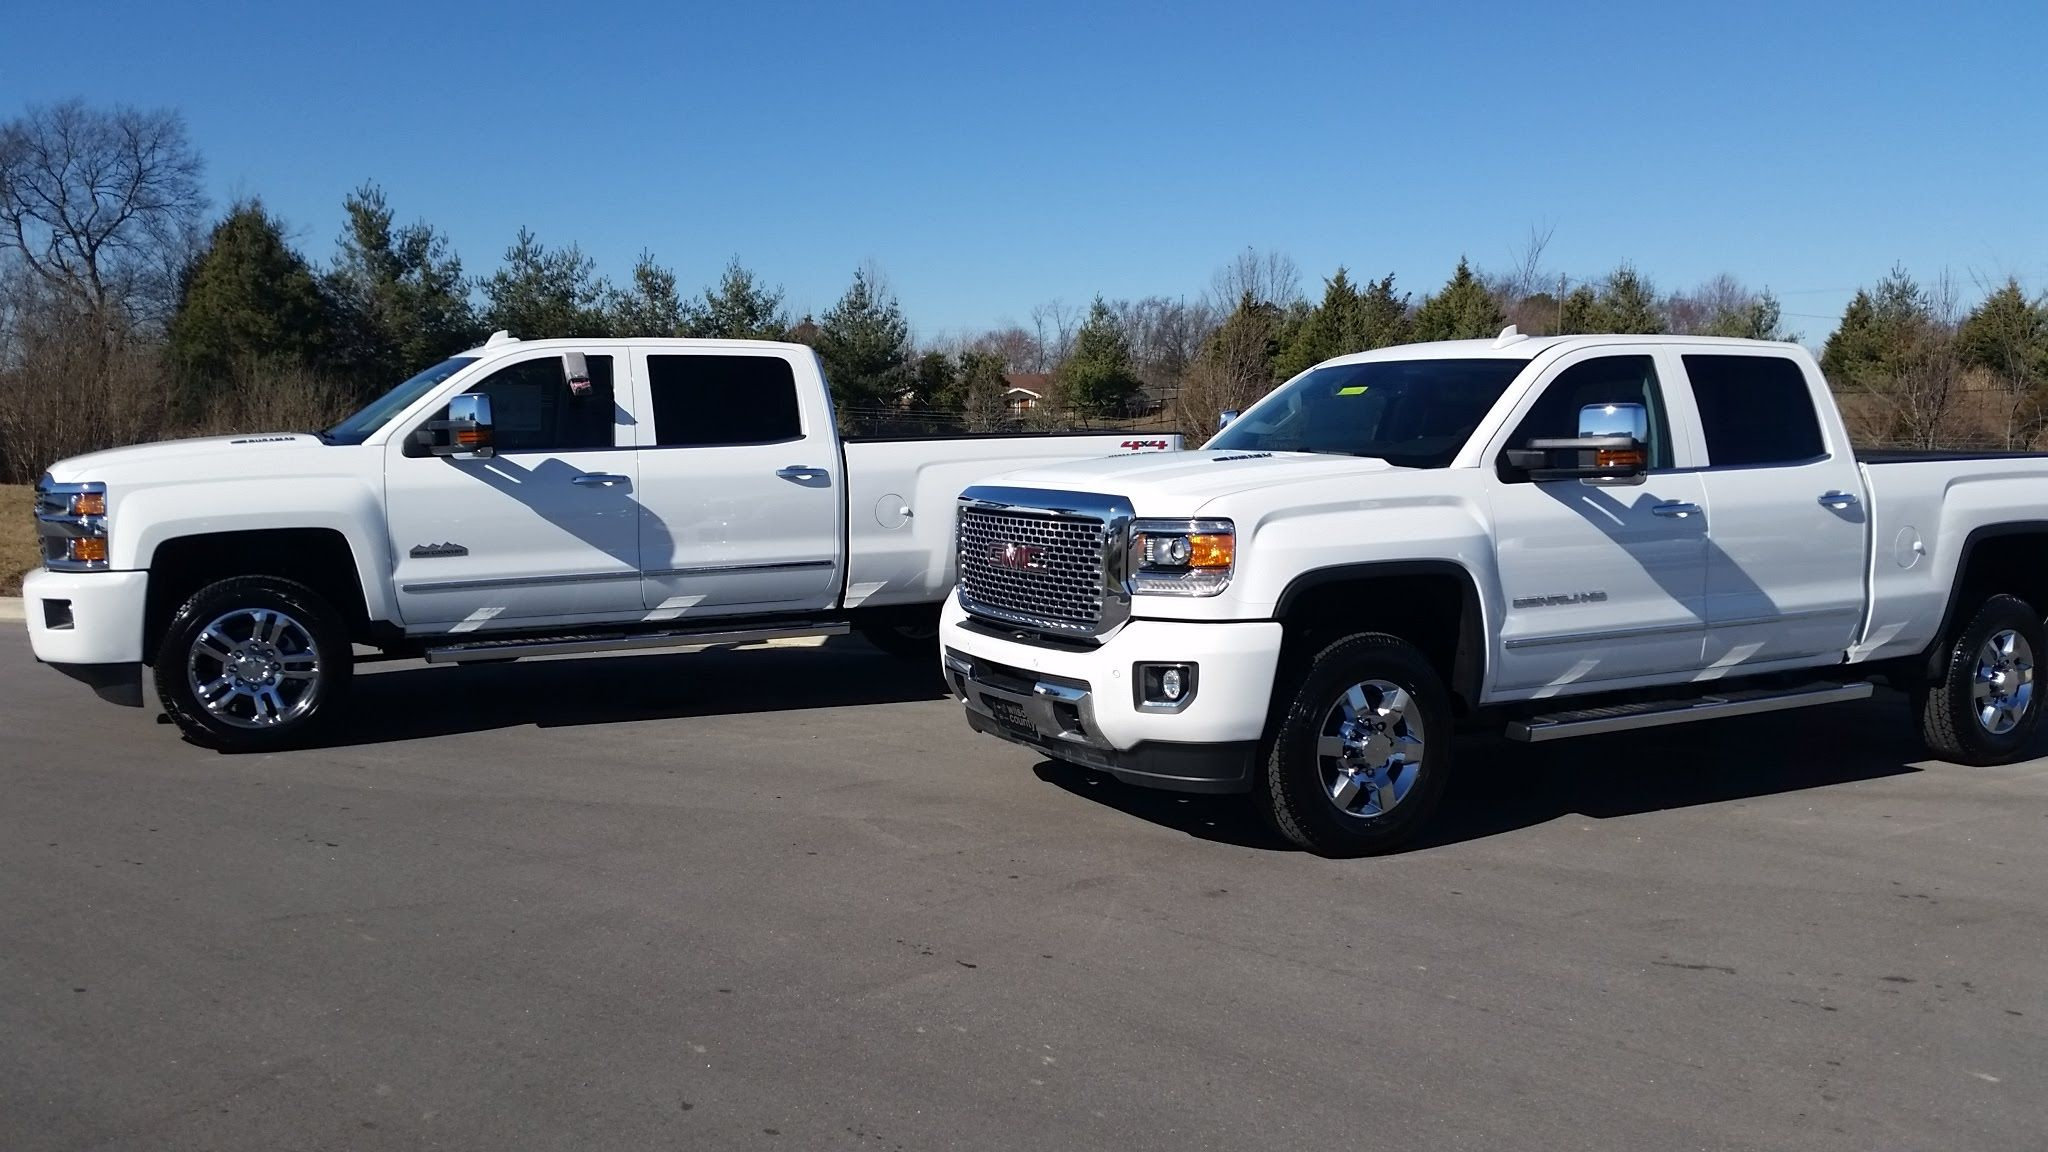 2015 Gmc Denali Hd Vs Chevy 2500 Hd High Country Gmc Sierra Gmc